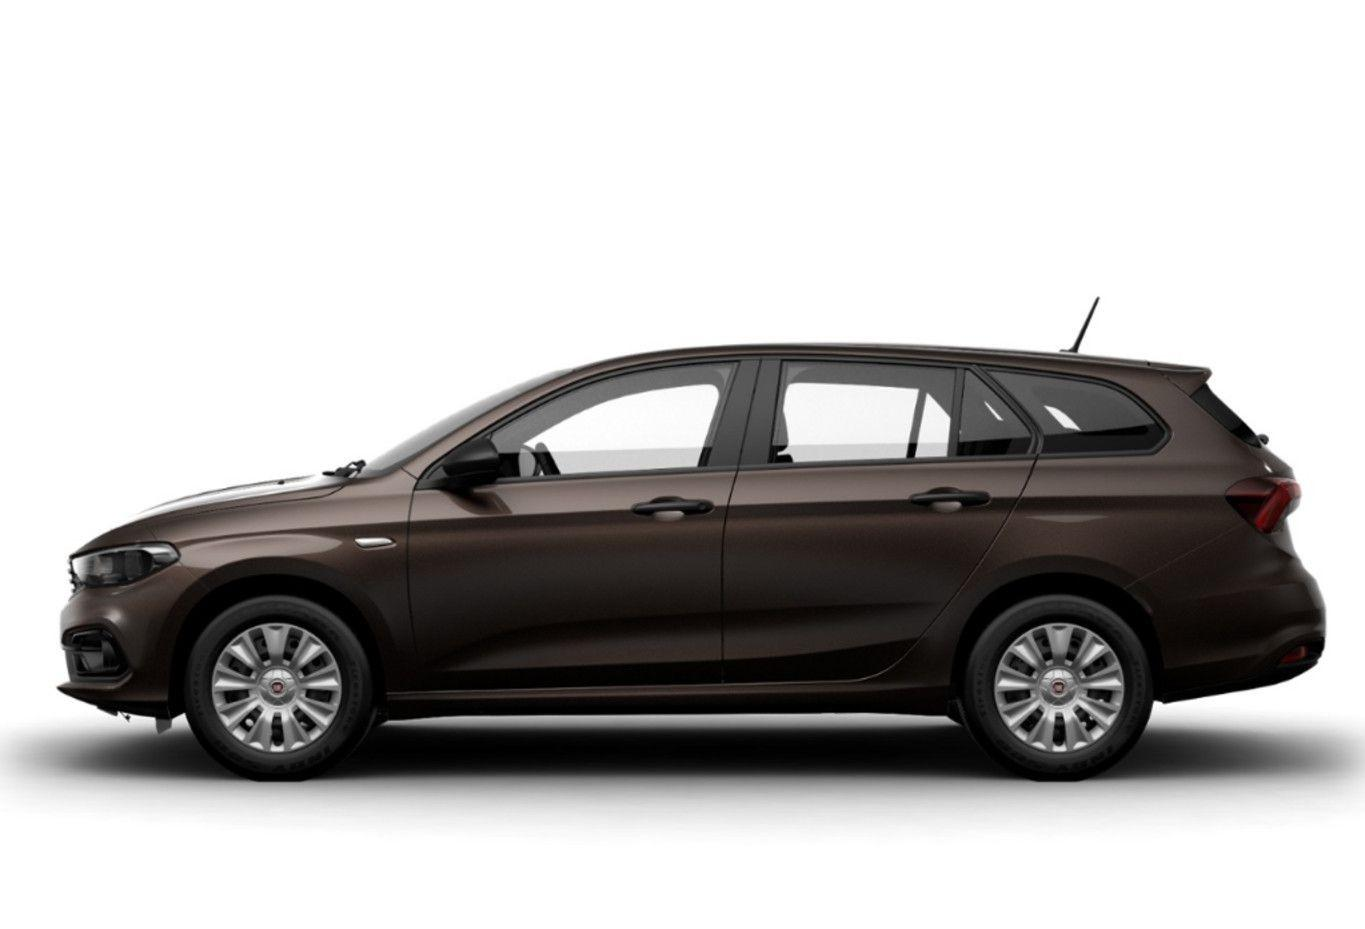 Fiat Tipo Kombi 1.0 T3 100 S&S UCon LaneAs DAB+ MFL - Leasing ohne Anzahlung - 403957_02